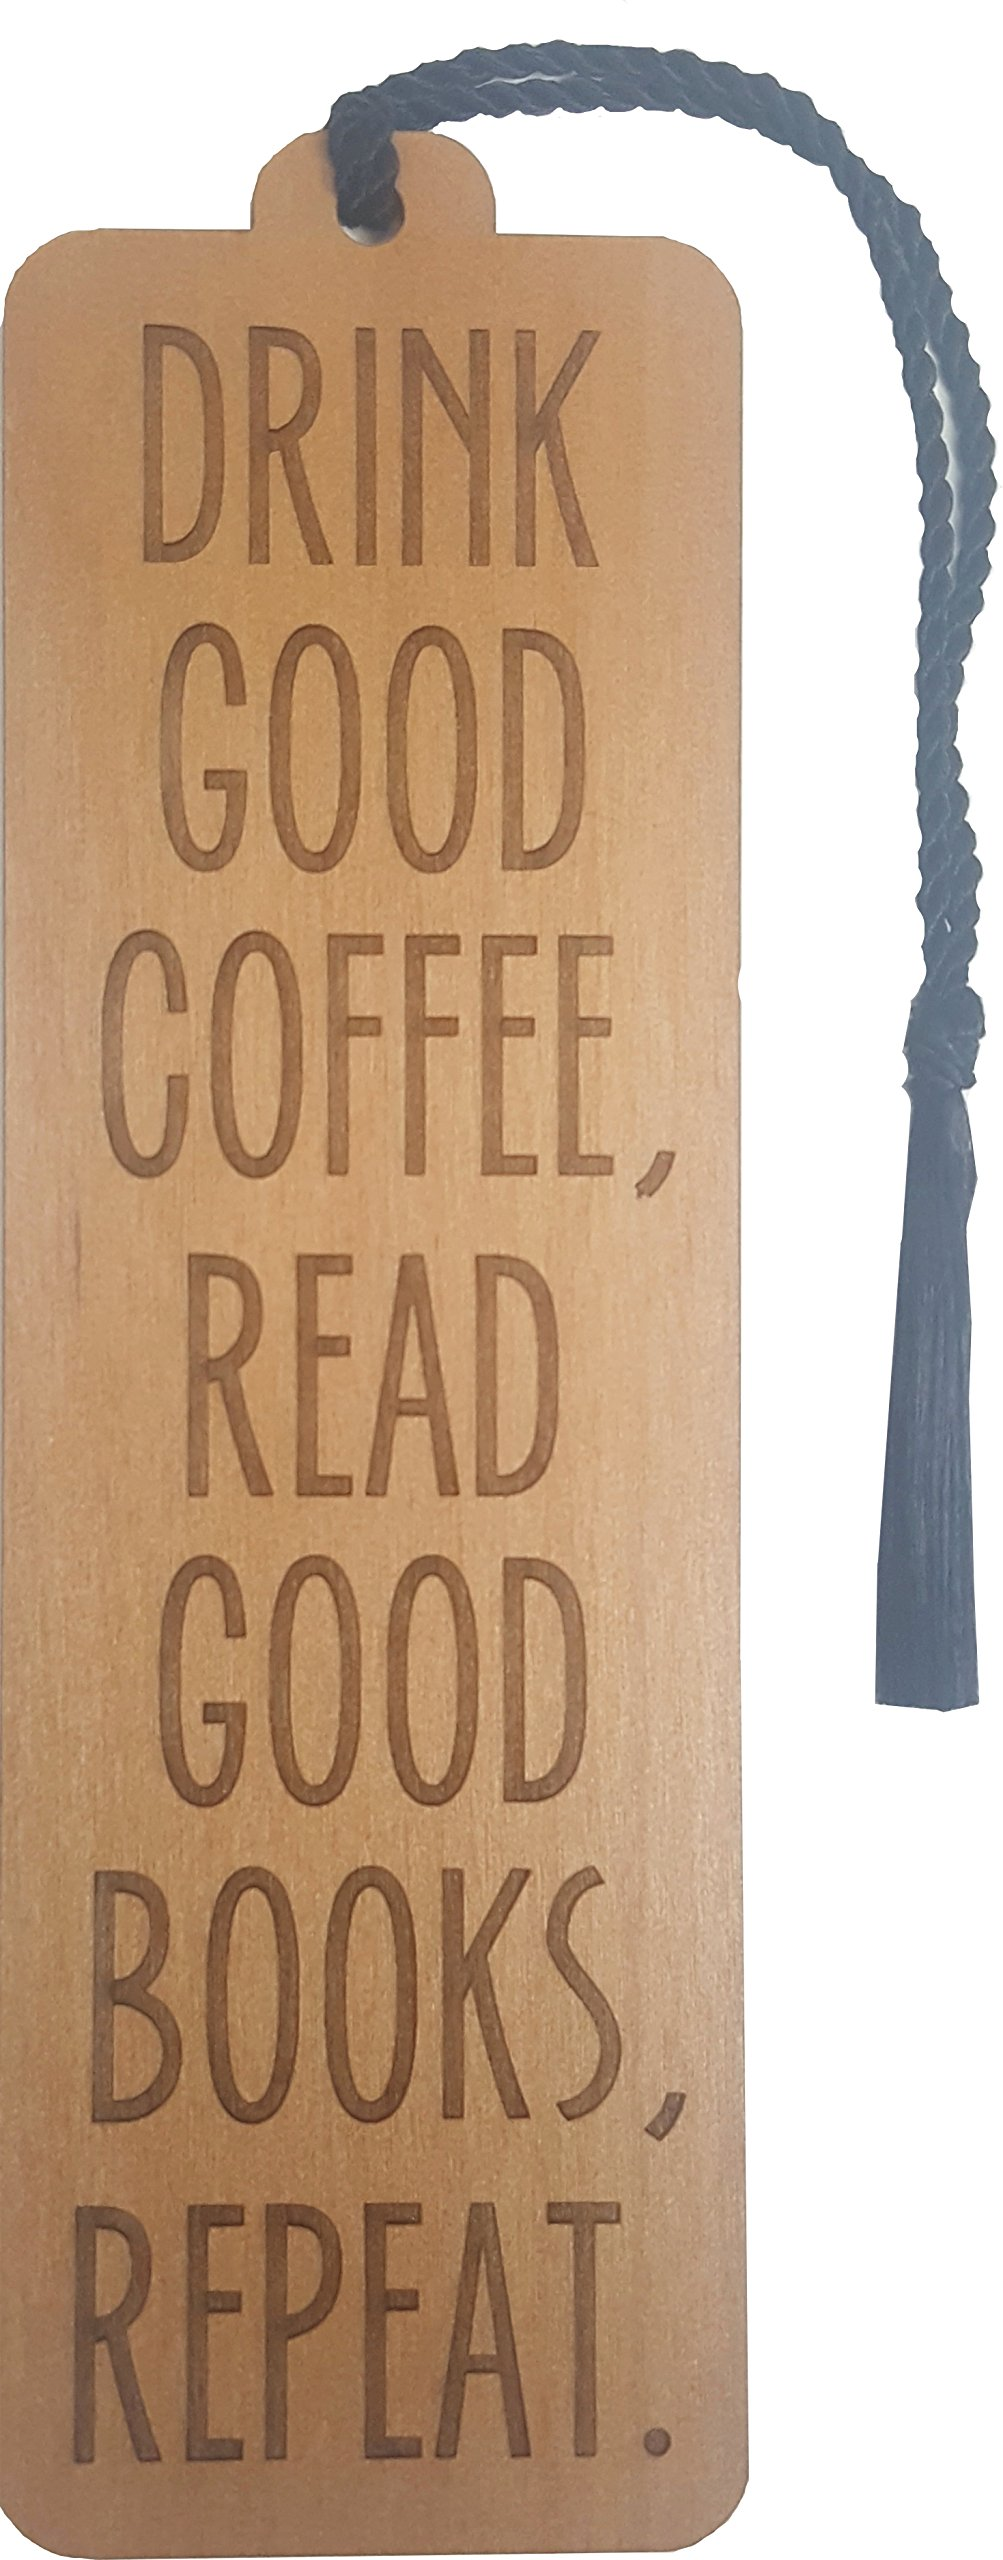 Wood Bookmark - Drink Good Coffee Read Good Books - Laser Engraved - Made in The USA - Wooden Book Mark with Black Tassel